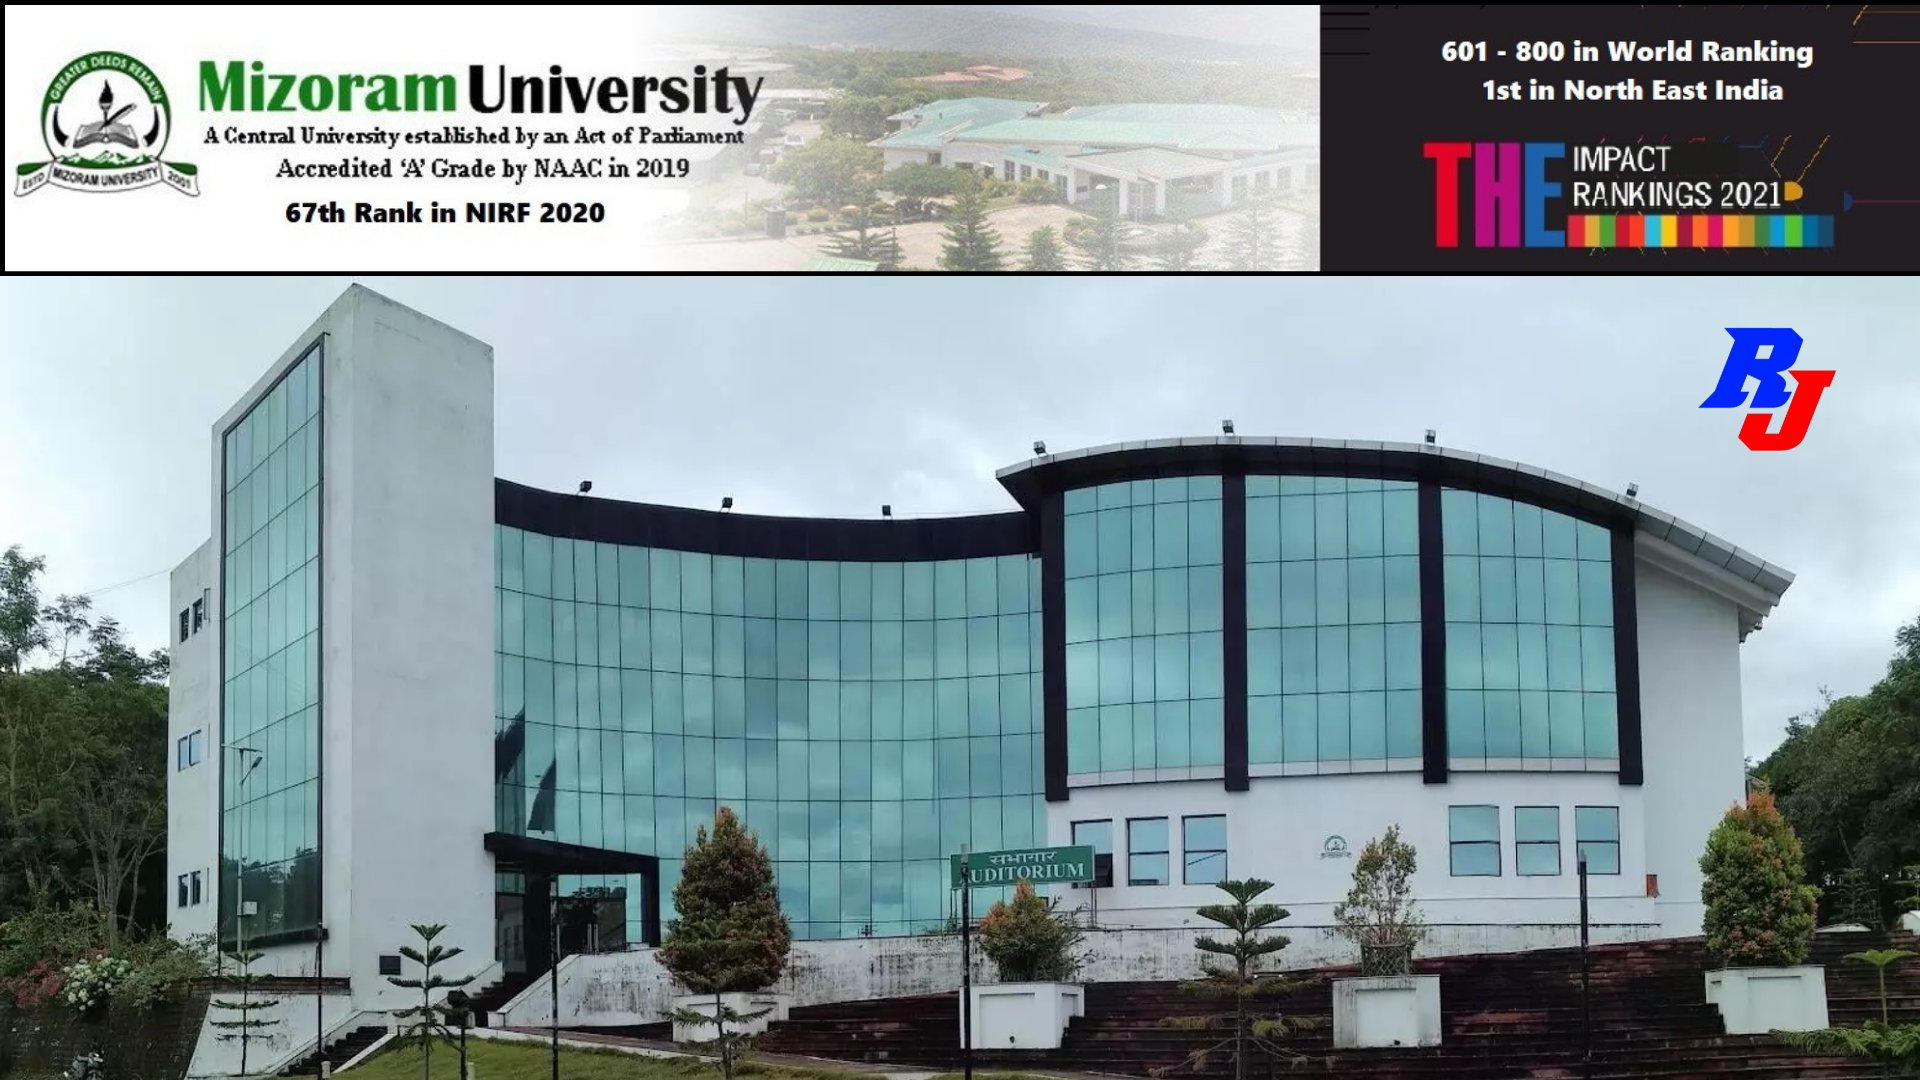 Guest Faculty Advertisement at Mizoram University (Central University), Aizawl, India, Total Post